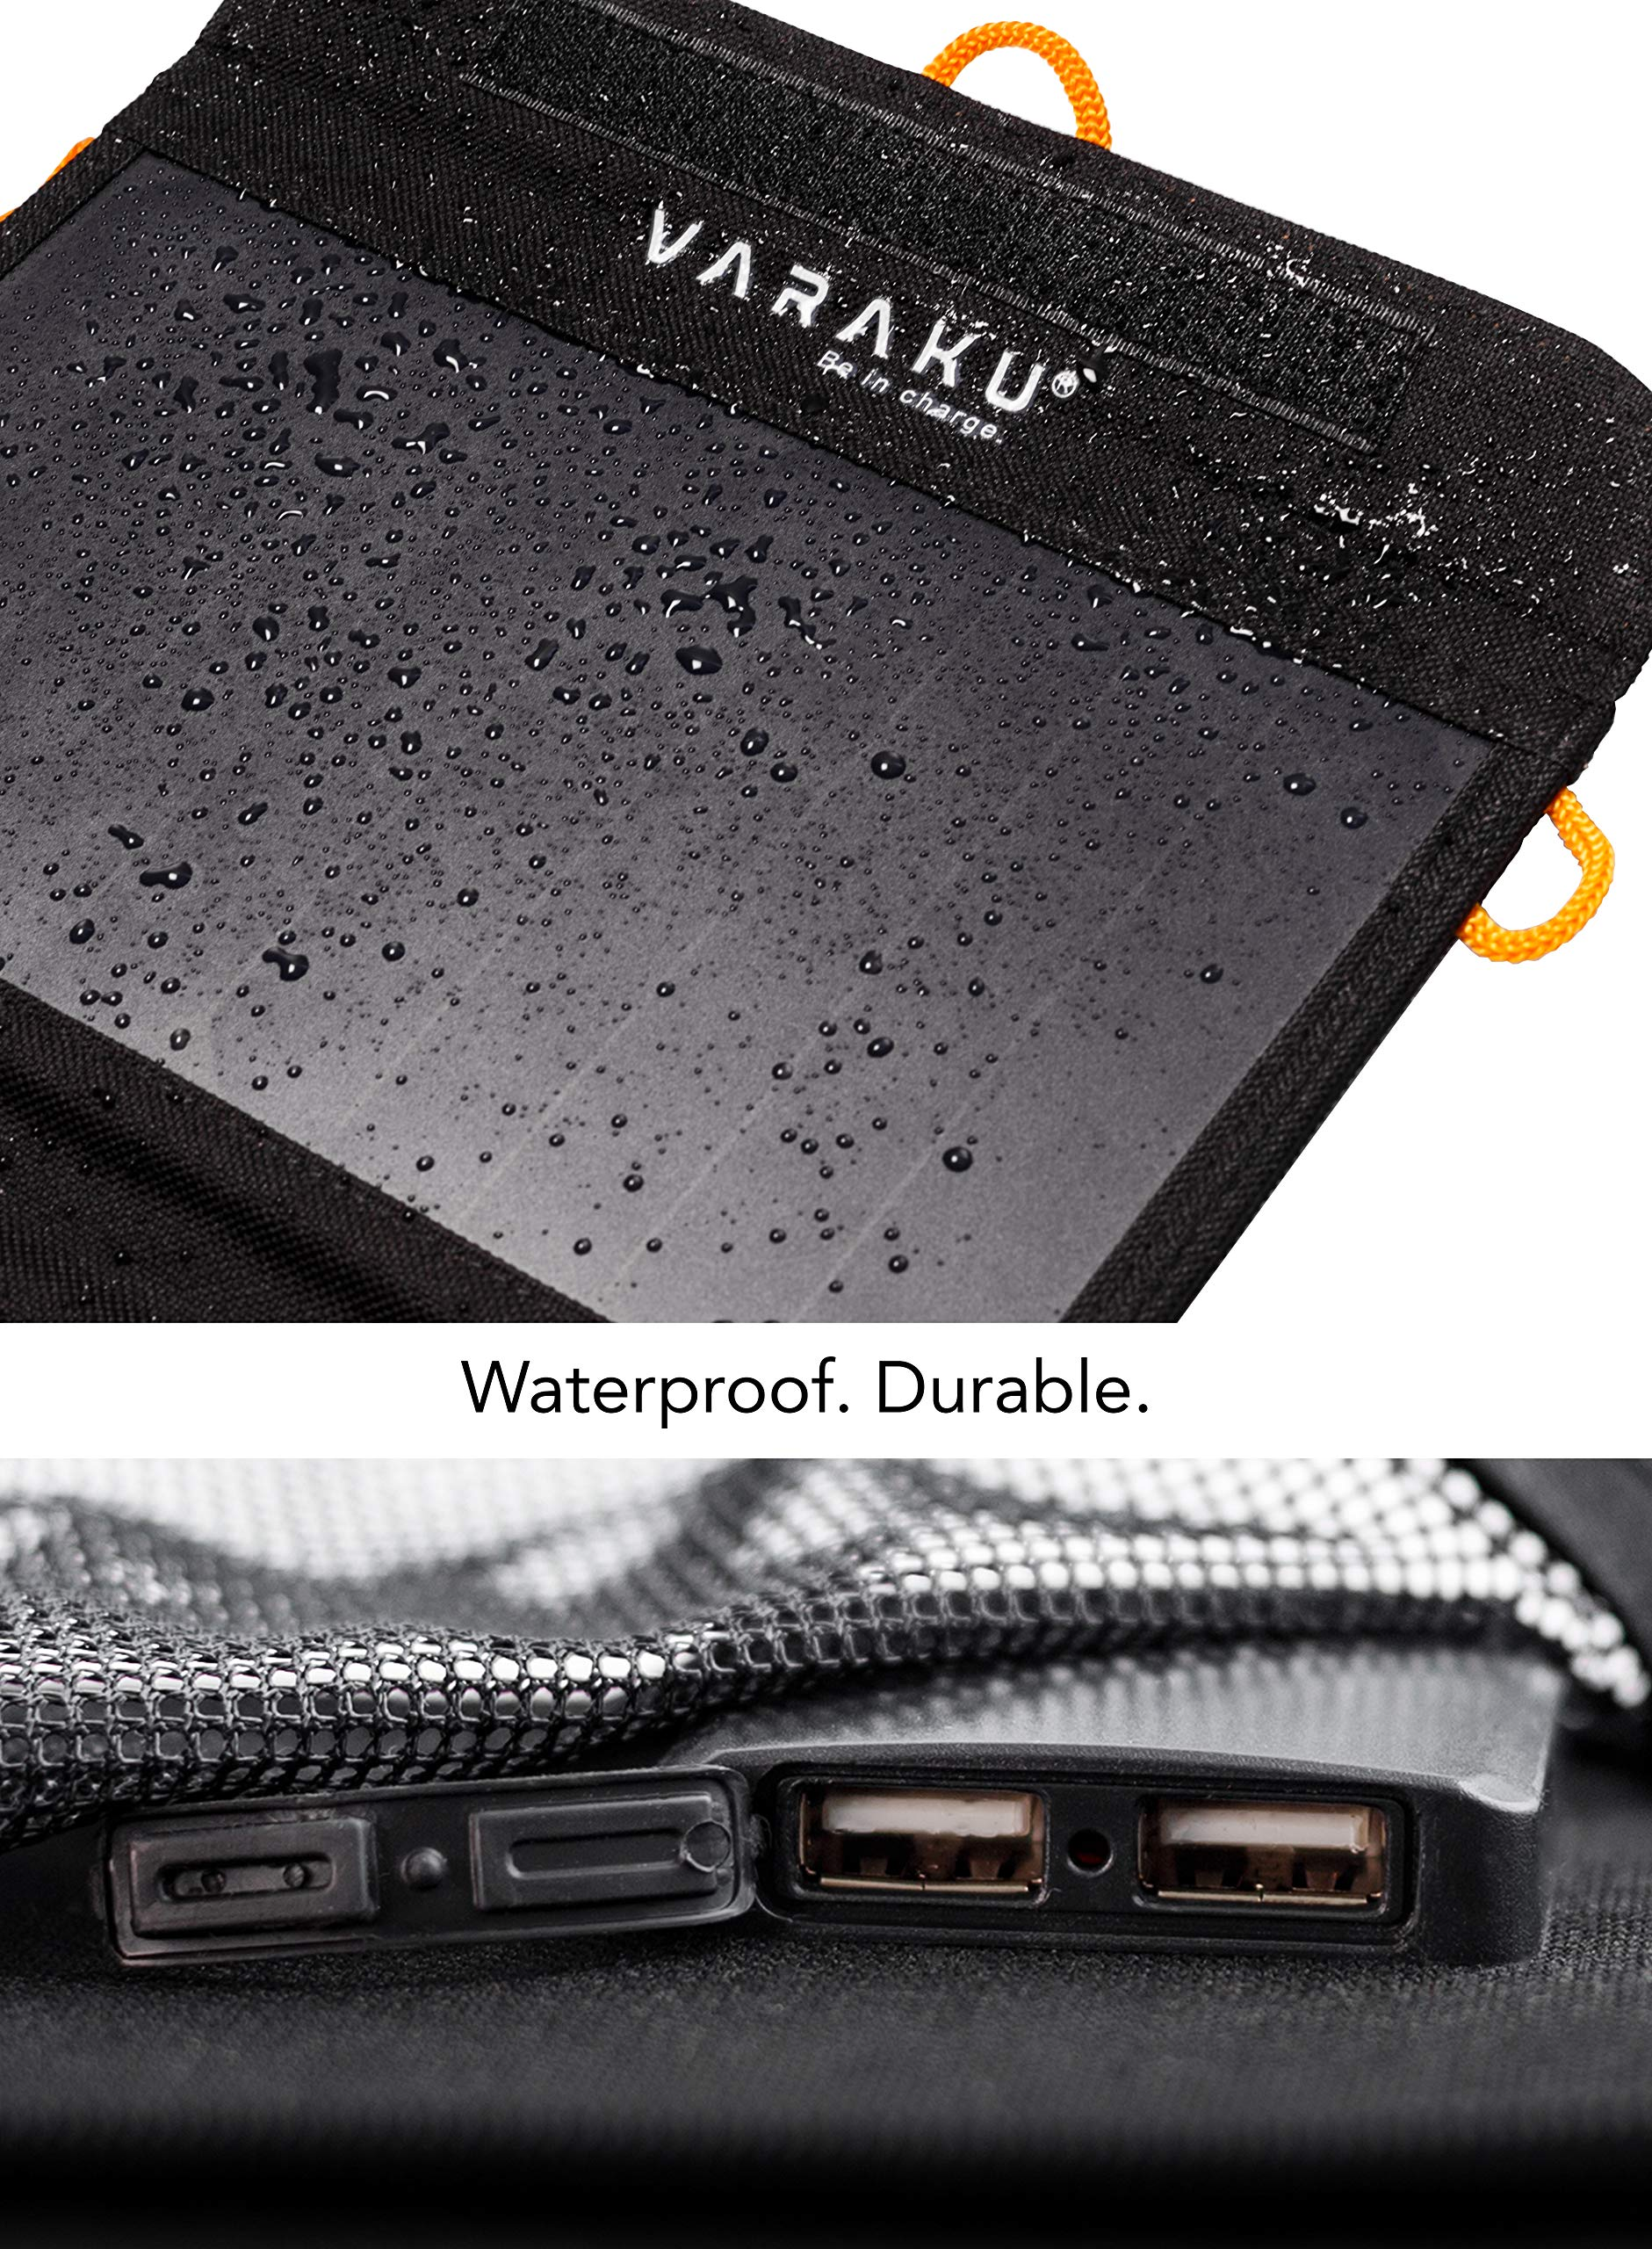 Portable Solar Charger 10W - Dual USB Solar Panel Foldable – Best Power for, iPhone, X, 8, 7, 6s, iPad, Cell Phone Android & Electronic Devices - Waterproof Sun Phone Charger for Camping & Hiking by VARAKU (Image #3)